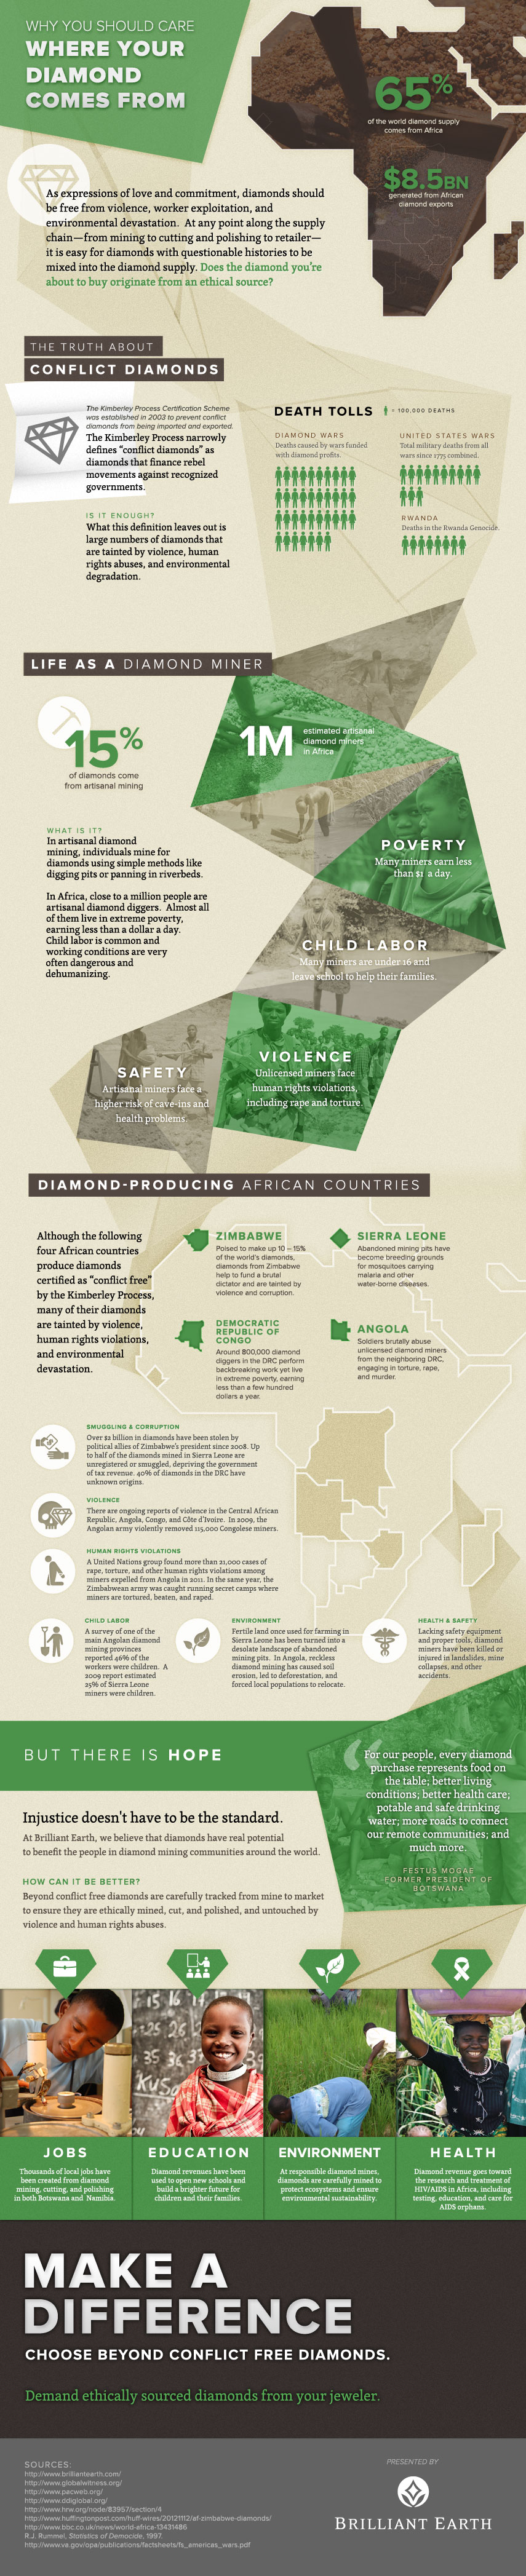 Why You Should Care Where Your Diamond Comes From